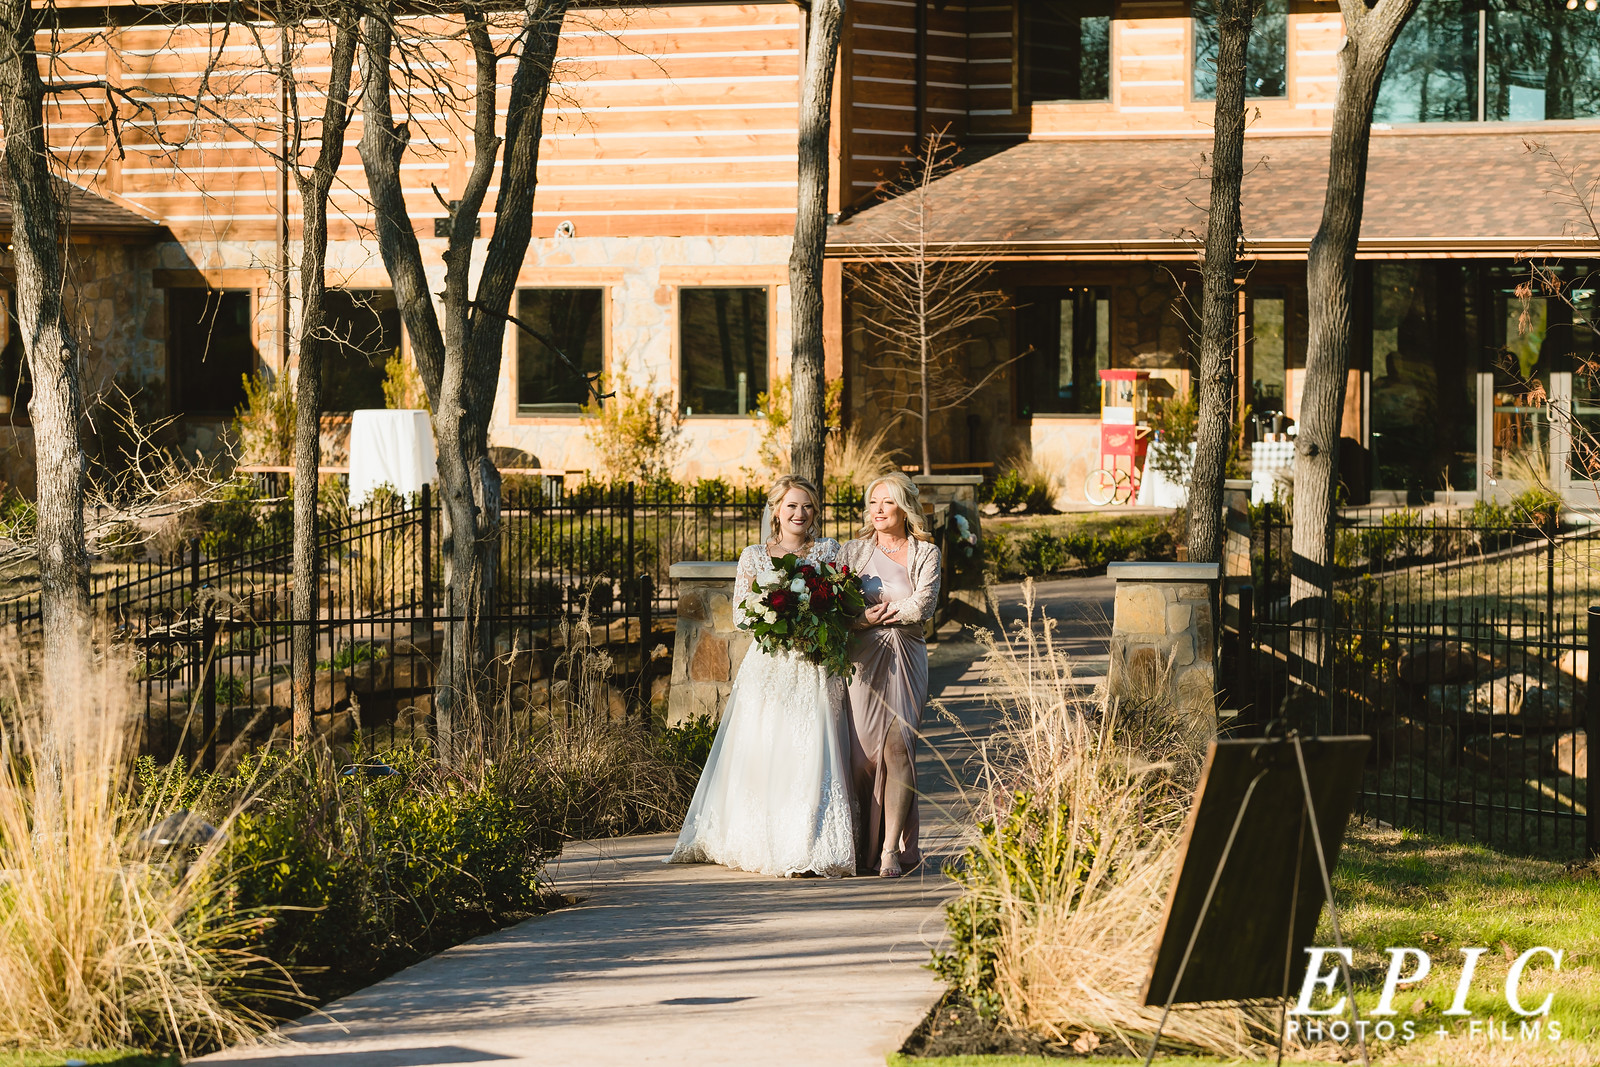 Hailee being walked down the aisle by her mother at The Springs Alvarado